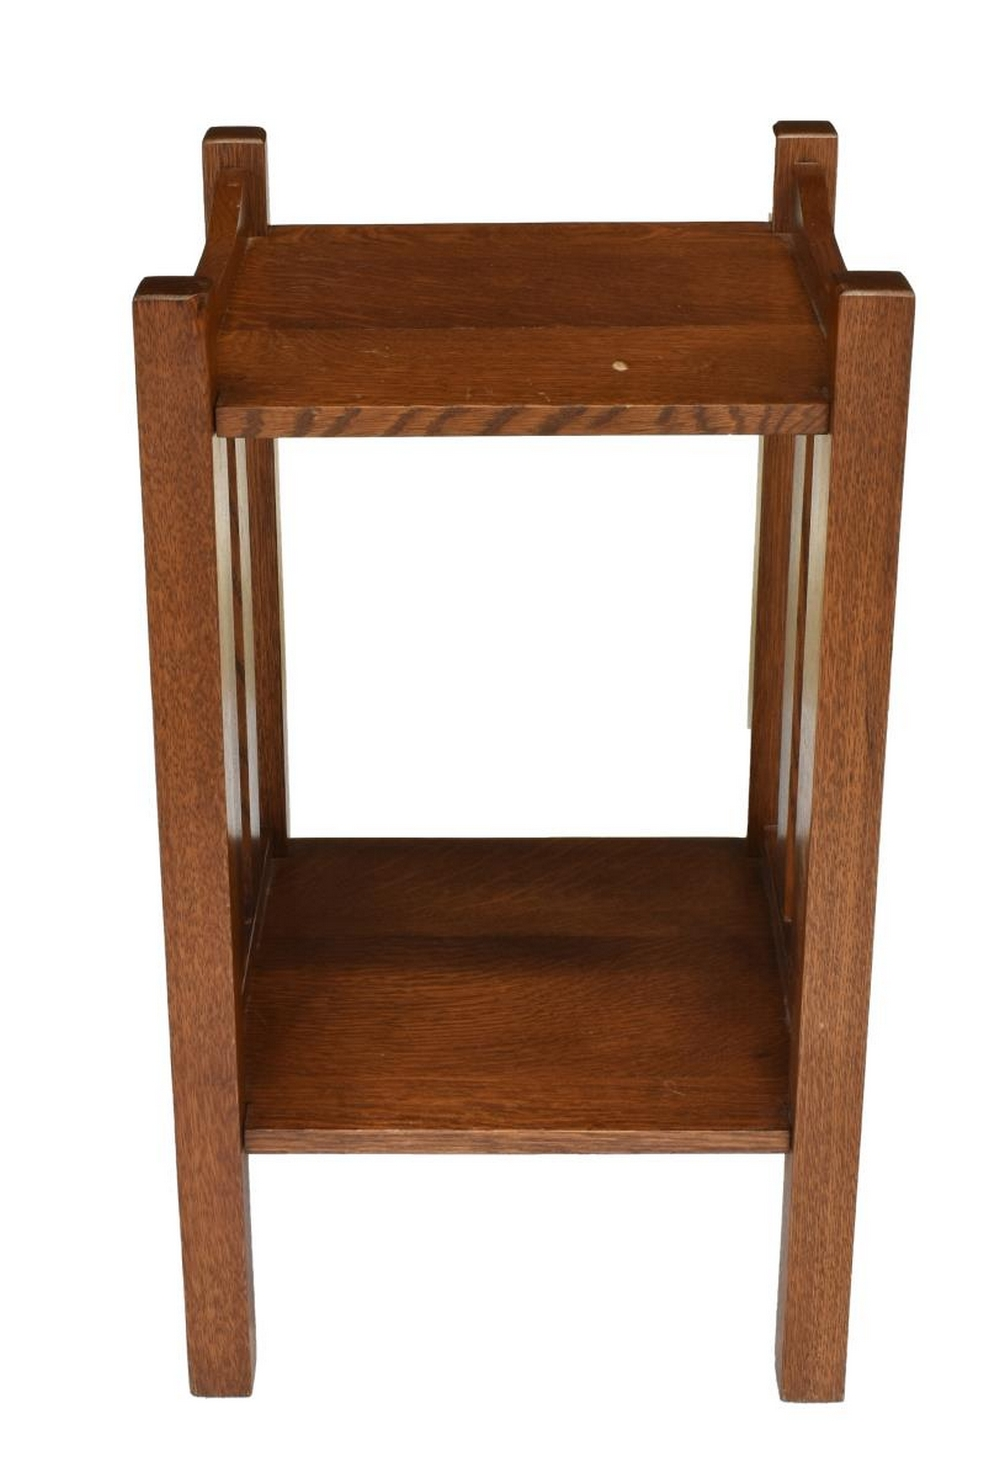 Lot 504: AMERICAN CRAFTSMAN OAK SLATTED STAND